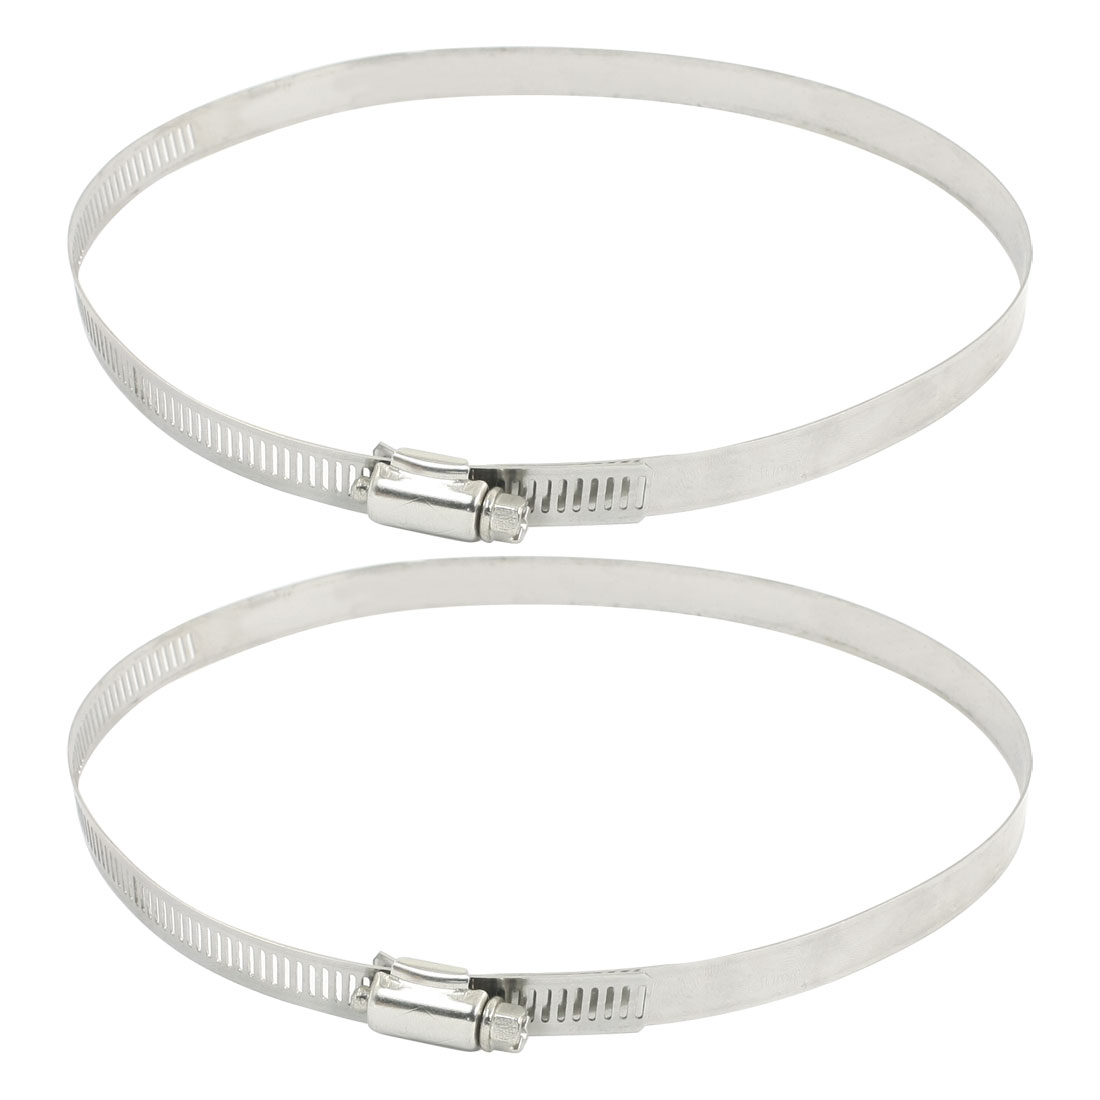 2Pcs Silver Tone Stainless Steel Adjustable 160mm to 180mm Worm Drive Hose Pipe Clamp Clip Fastener